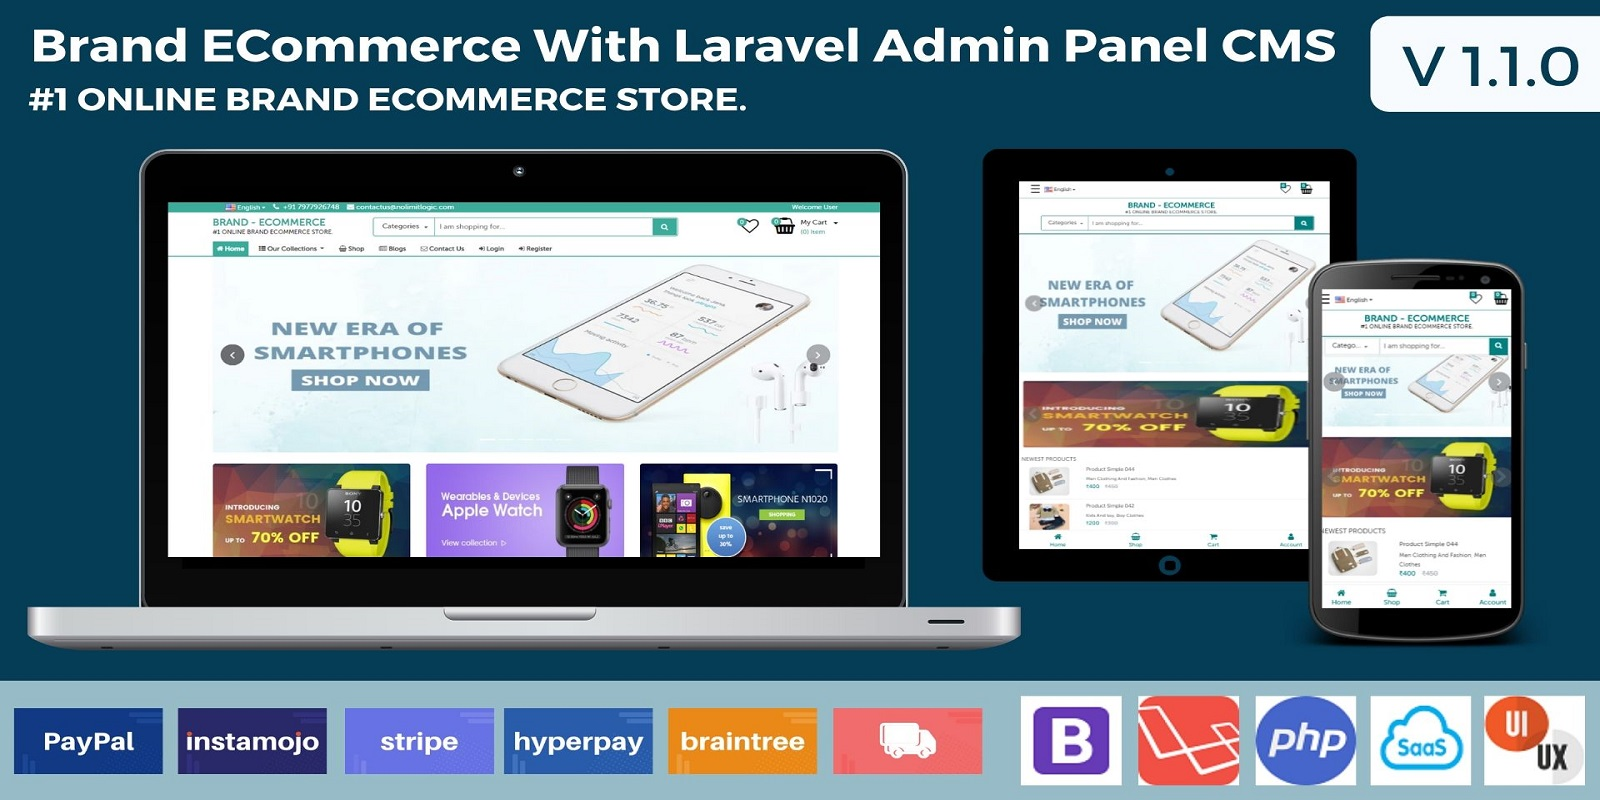 Brand Ecommerce With Laravel Admin Panel CMS